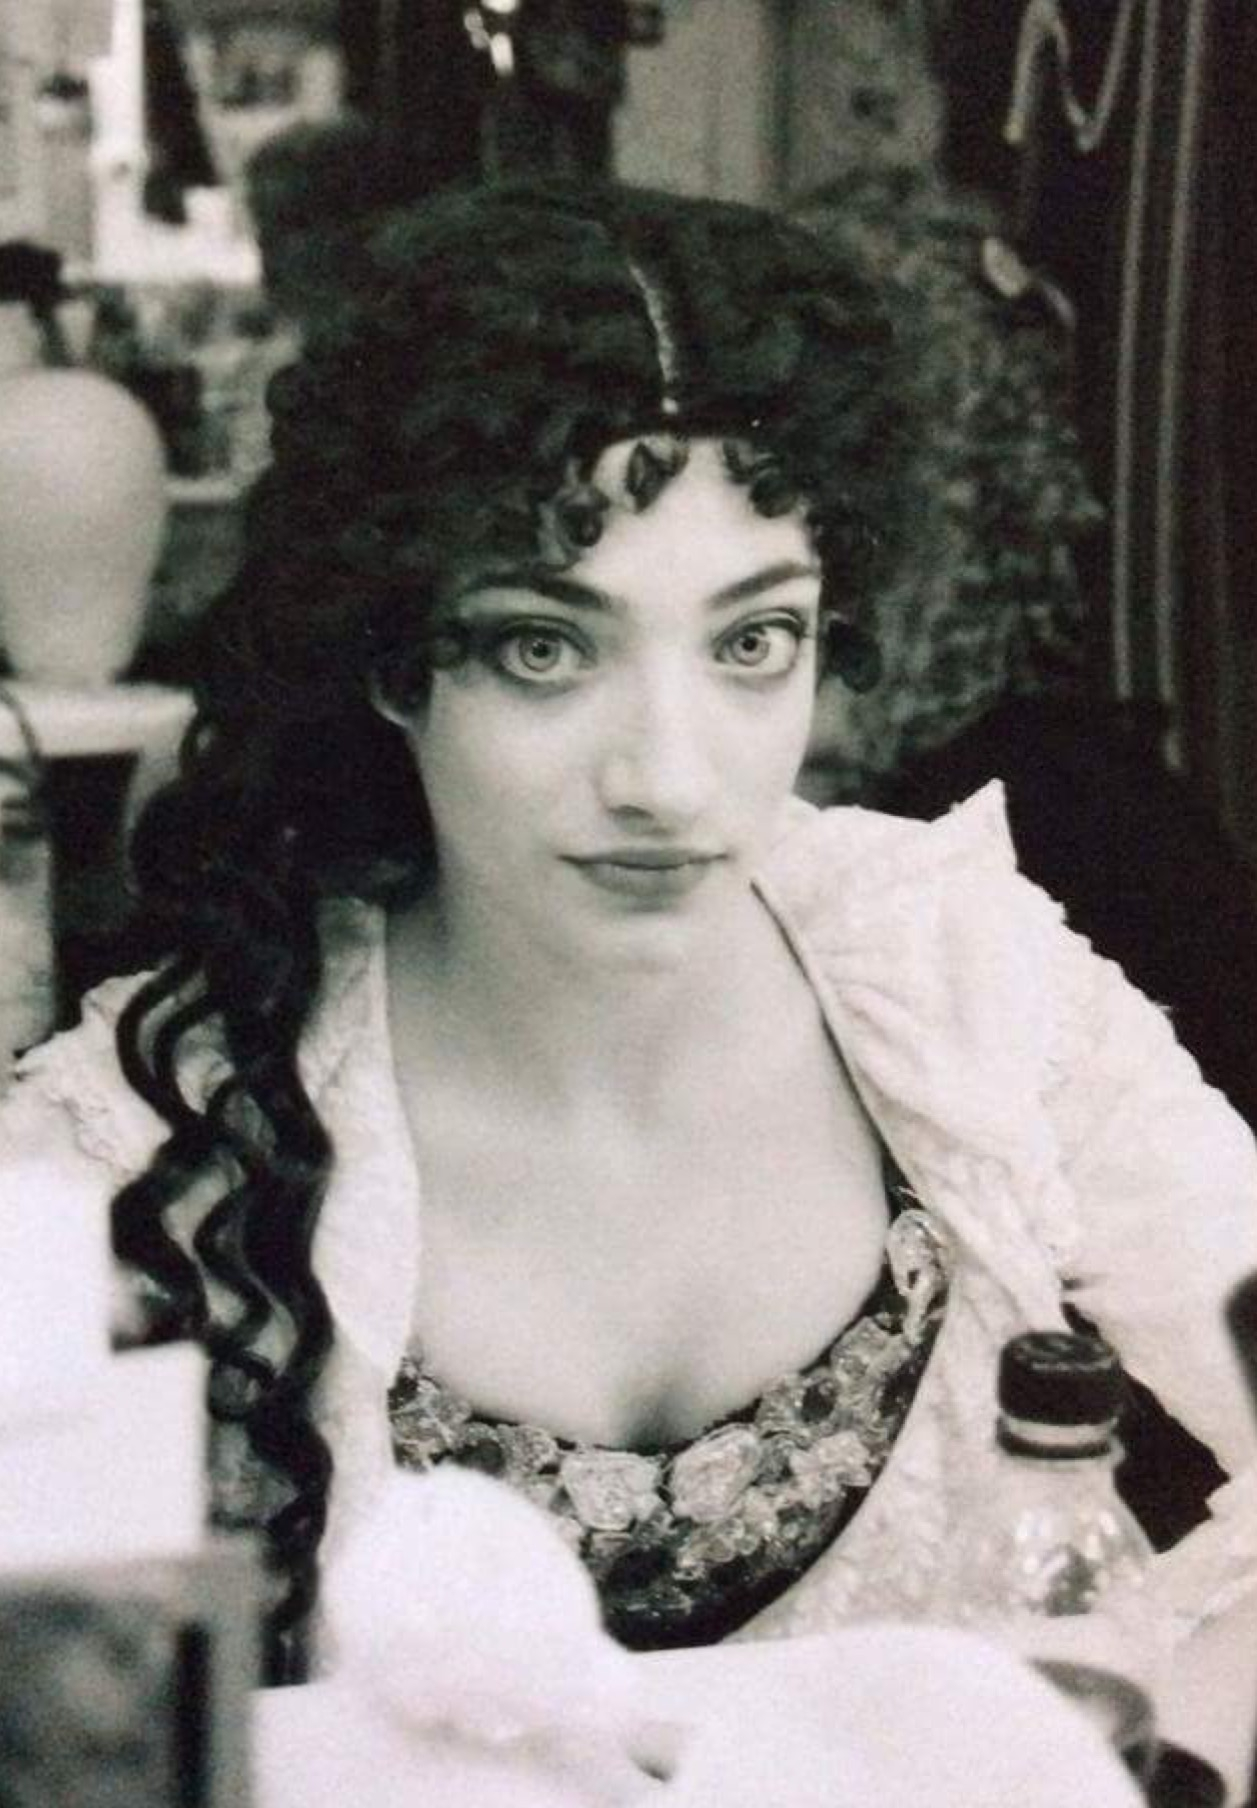 AGE 19 - my professional debut in Phantom of The Opera